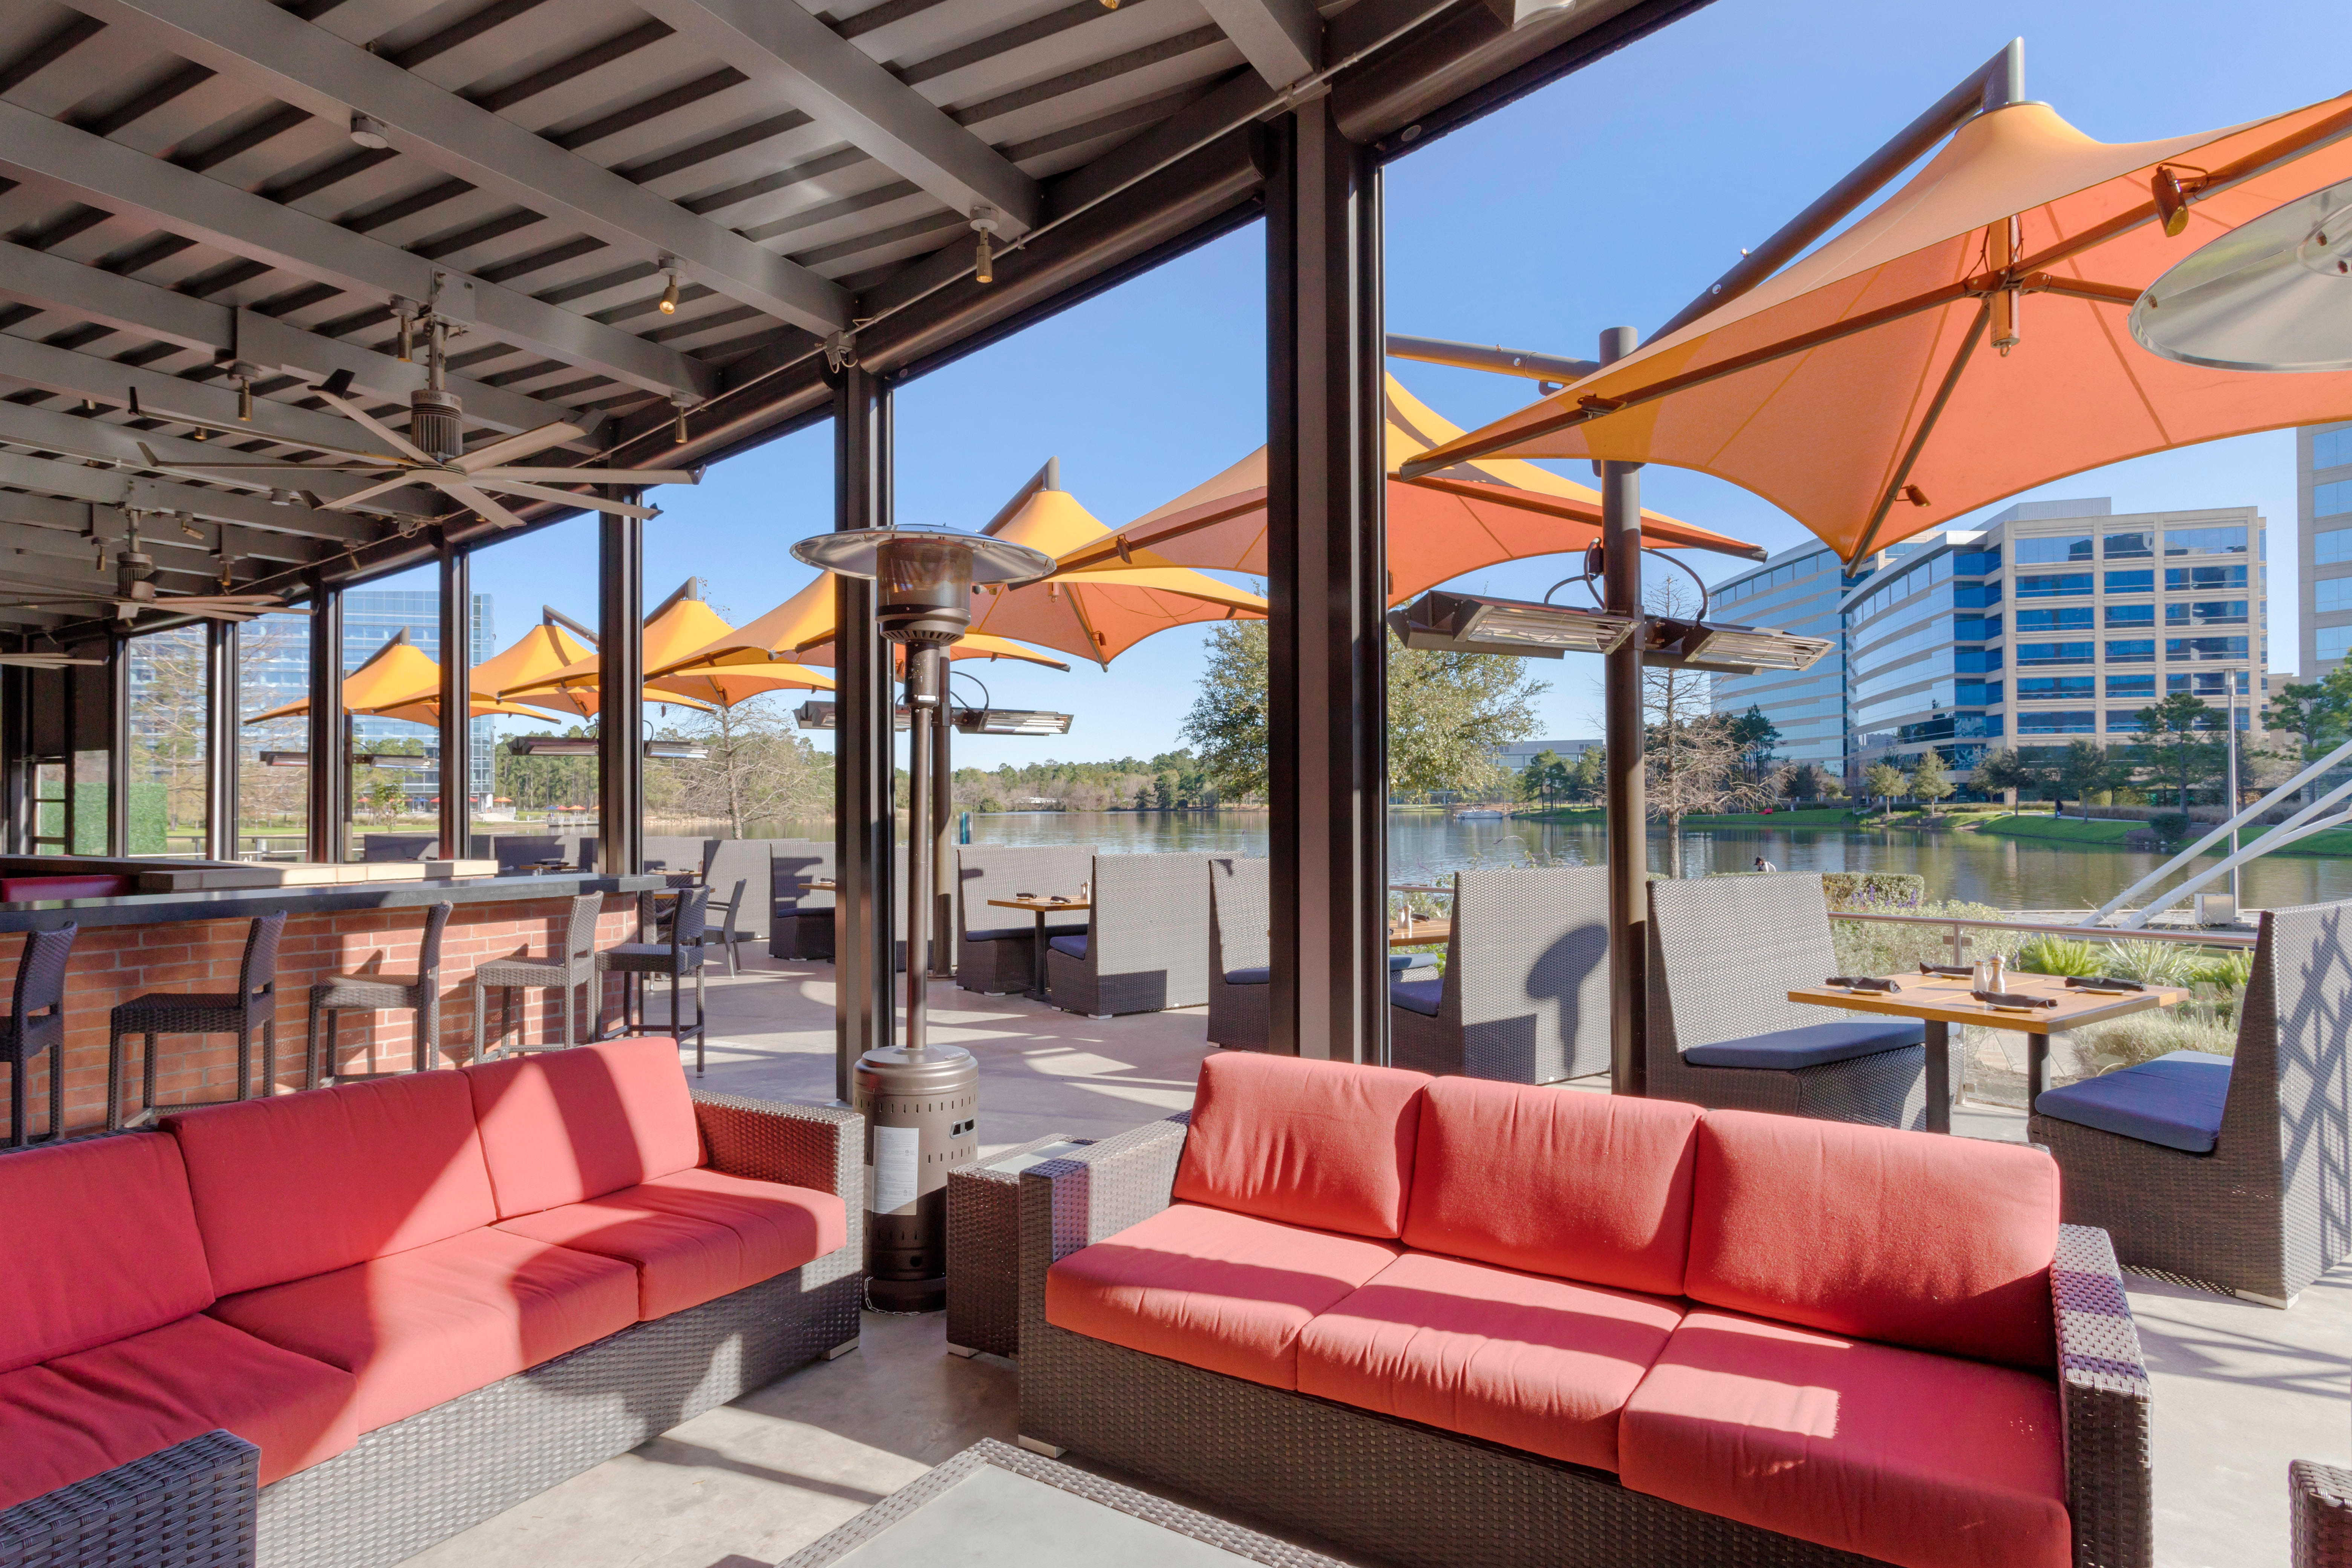 Del Frisco's Grille The Woodlands VIP Patio group dining room